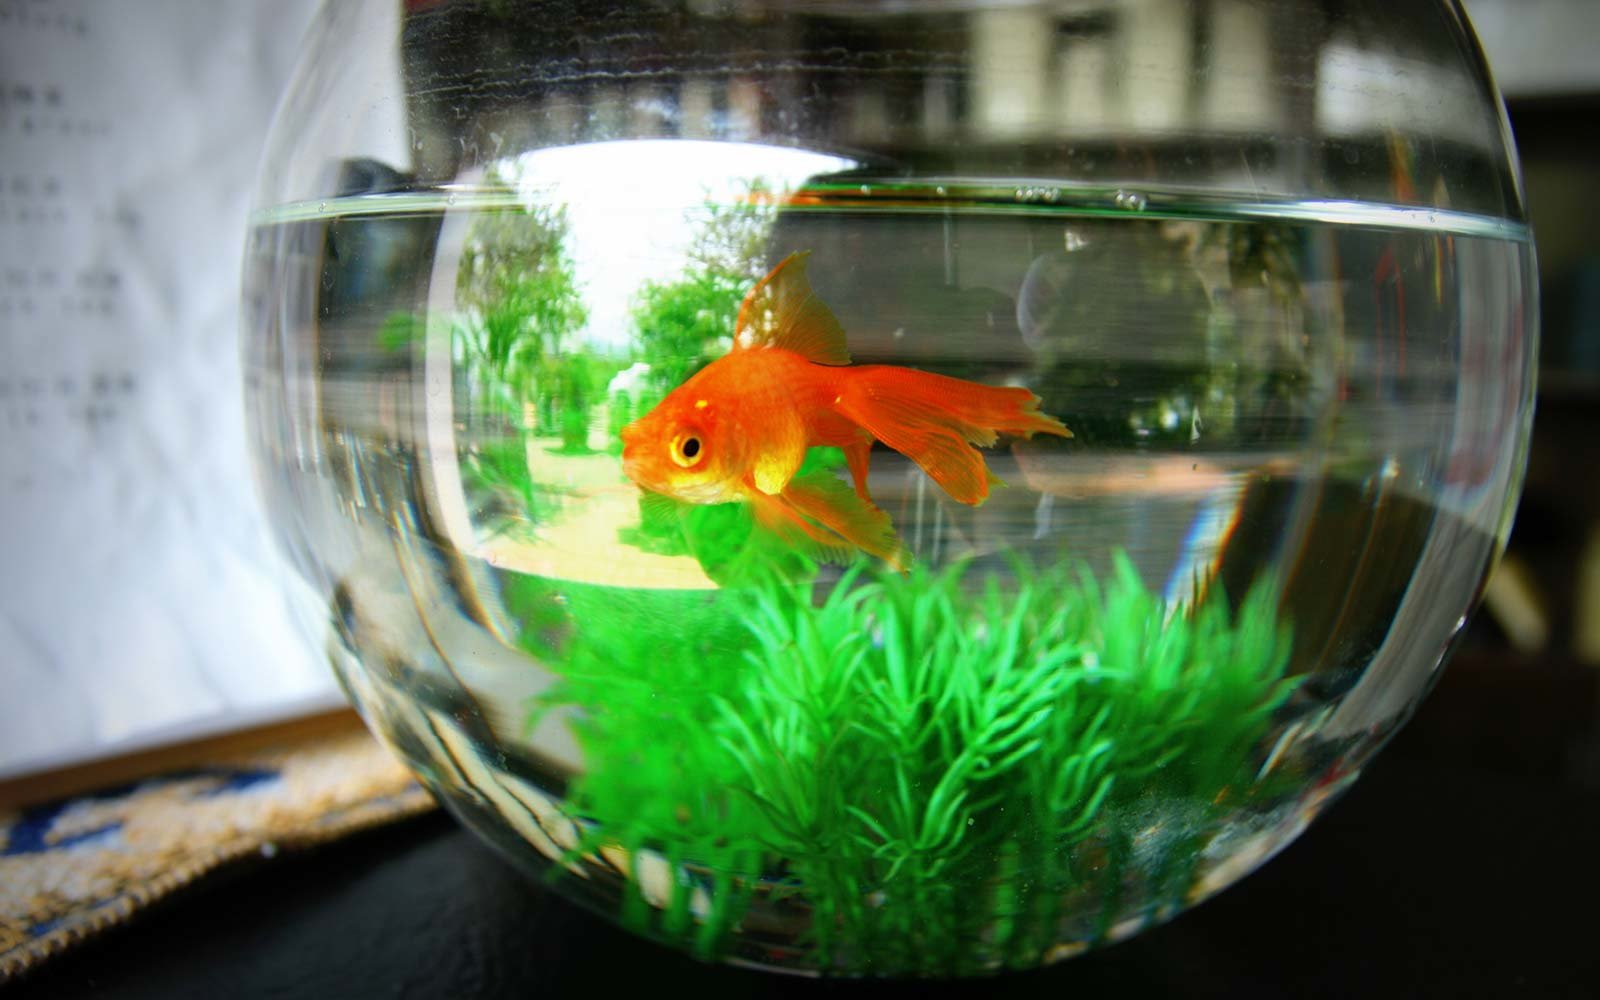 This hotel lets lonely guests rent a goldfish to keep them for How to make a fish bowl